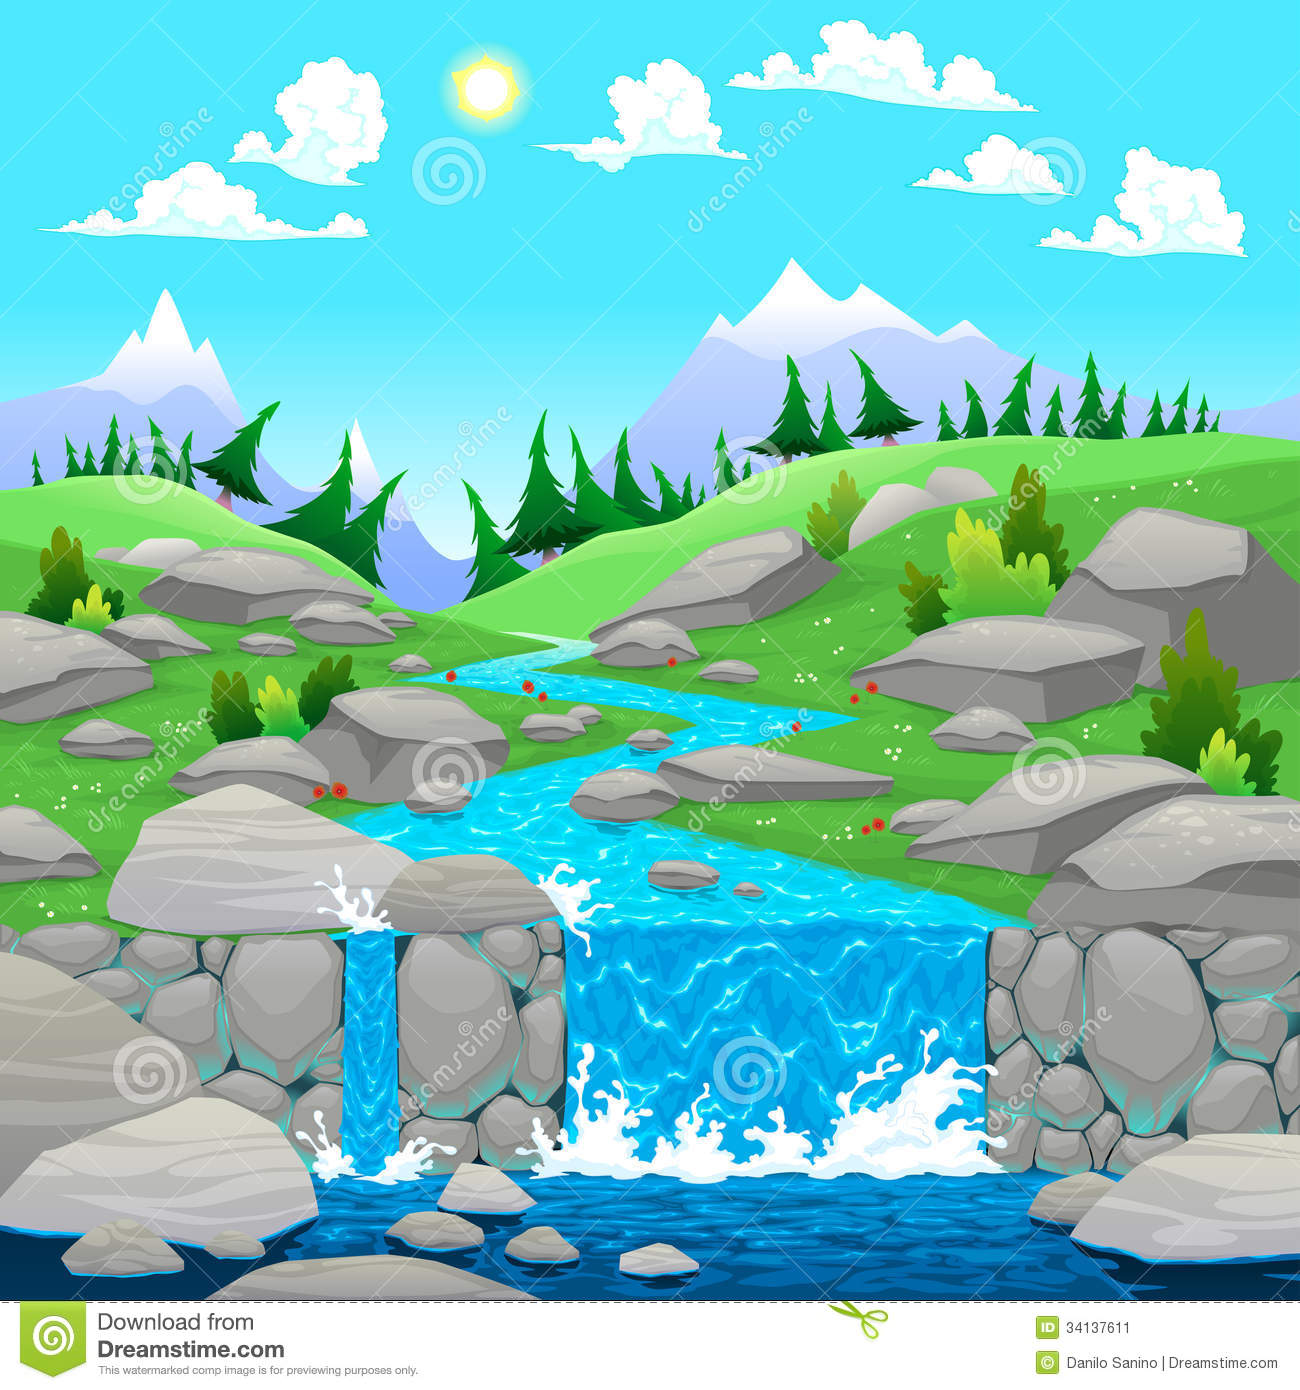 Cartoon Mountain with River